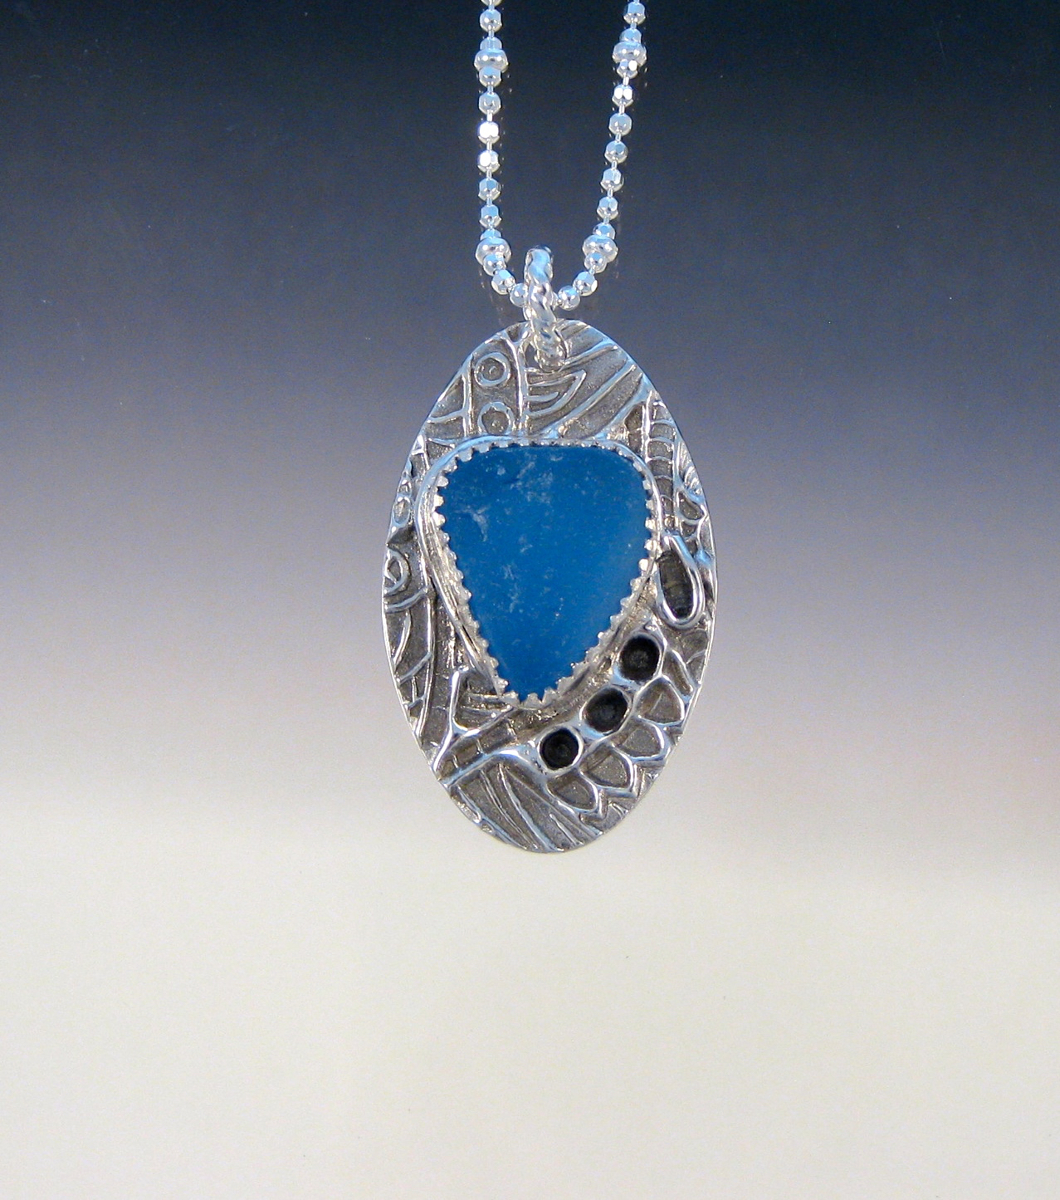 P4858 - Cornflower oval pendant (large view)